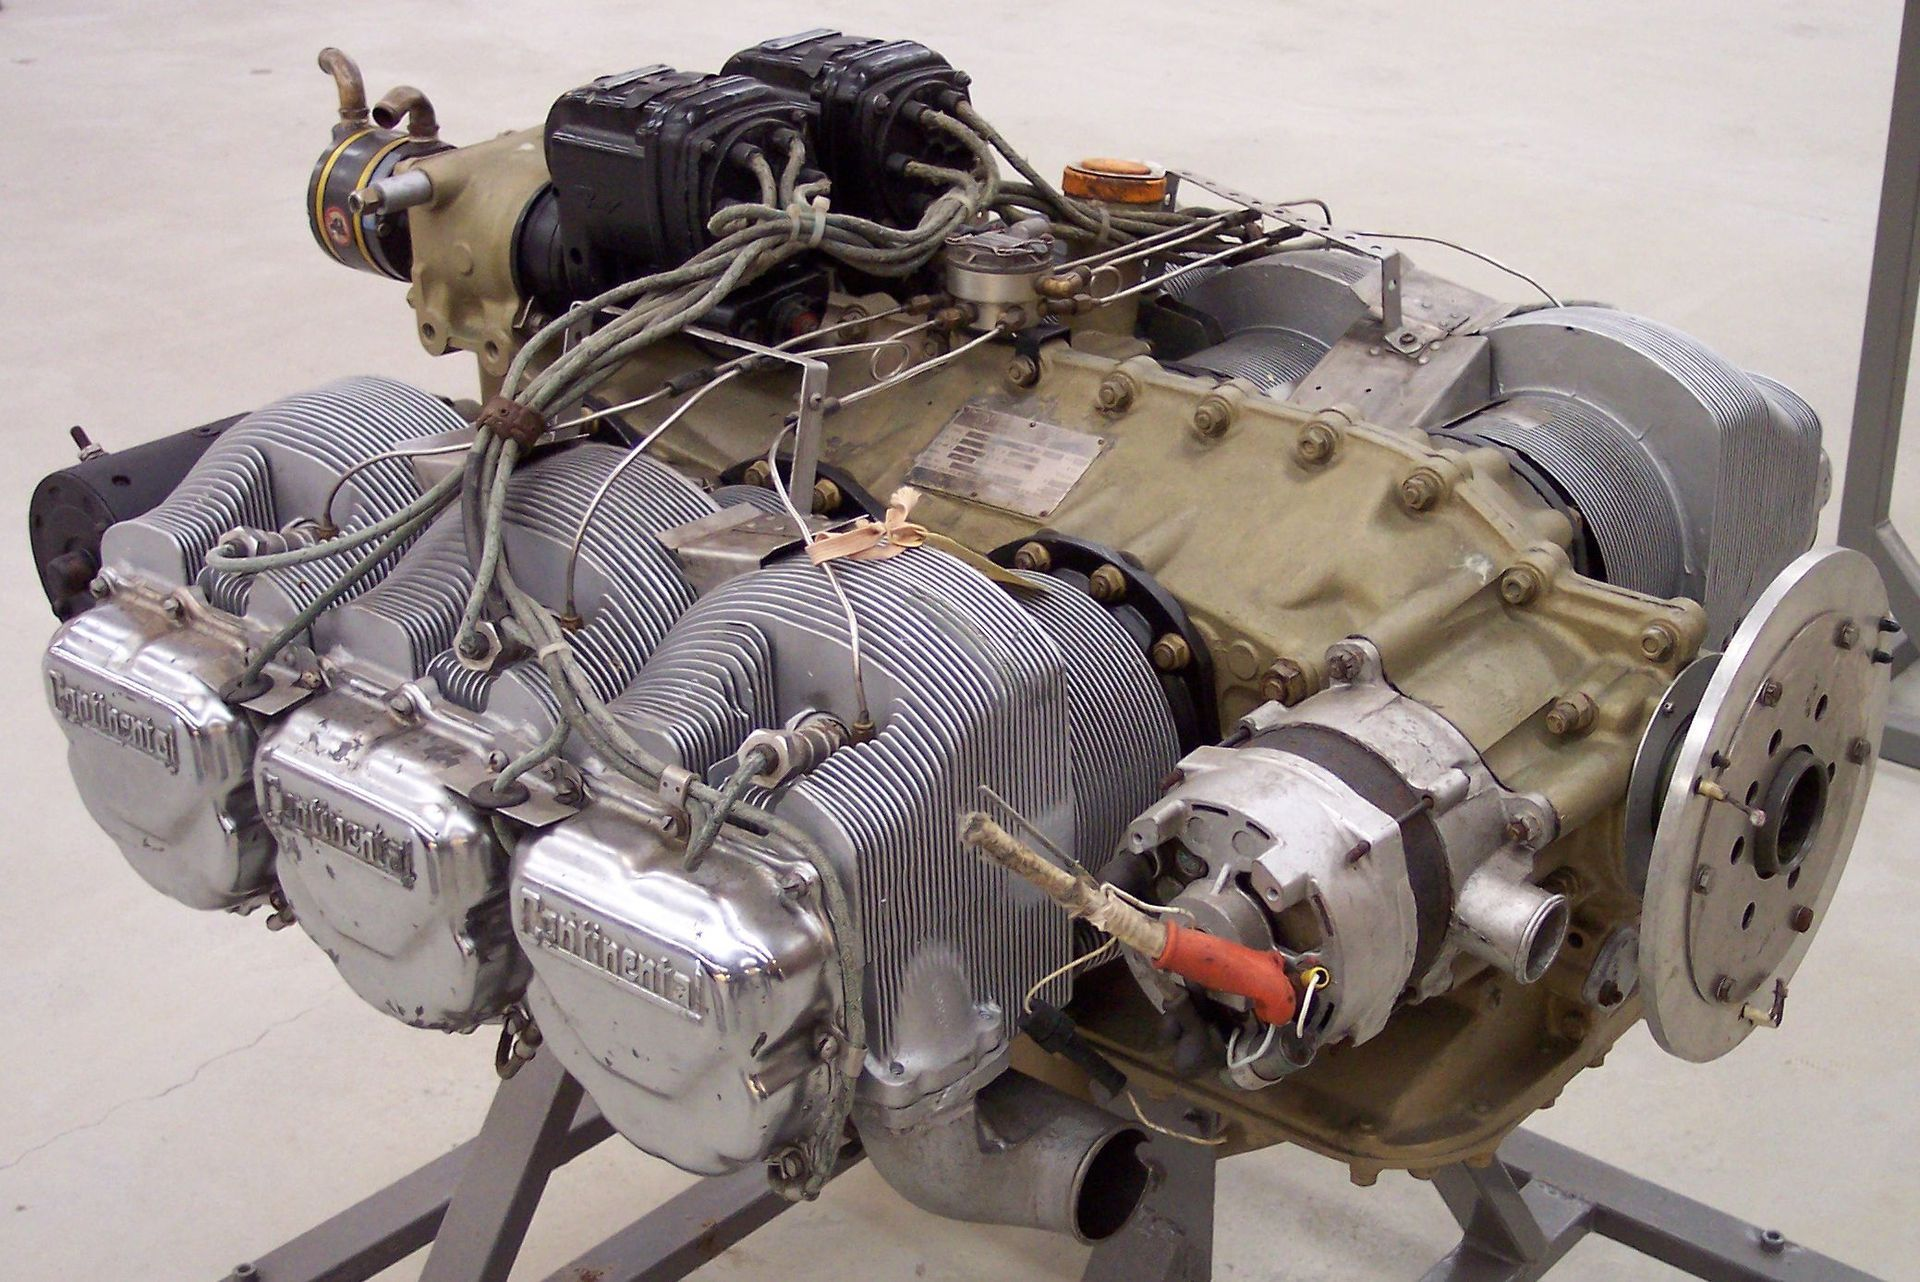 CONTINENTAL IO-520 is a six-cylinder, horizontally-opposed ...